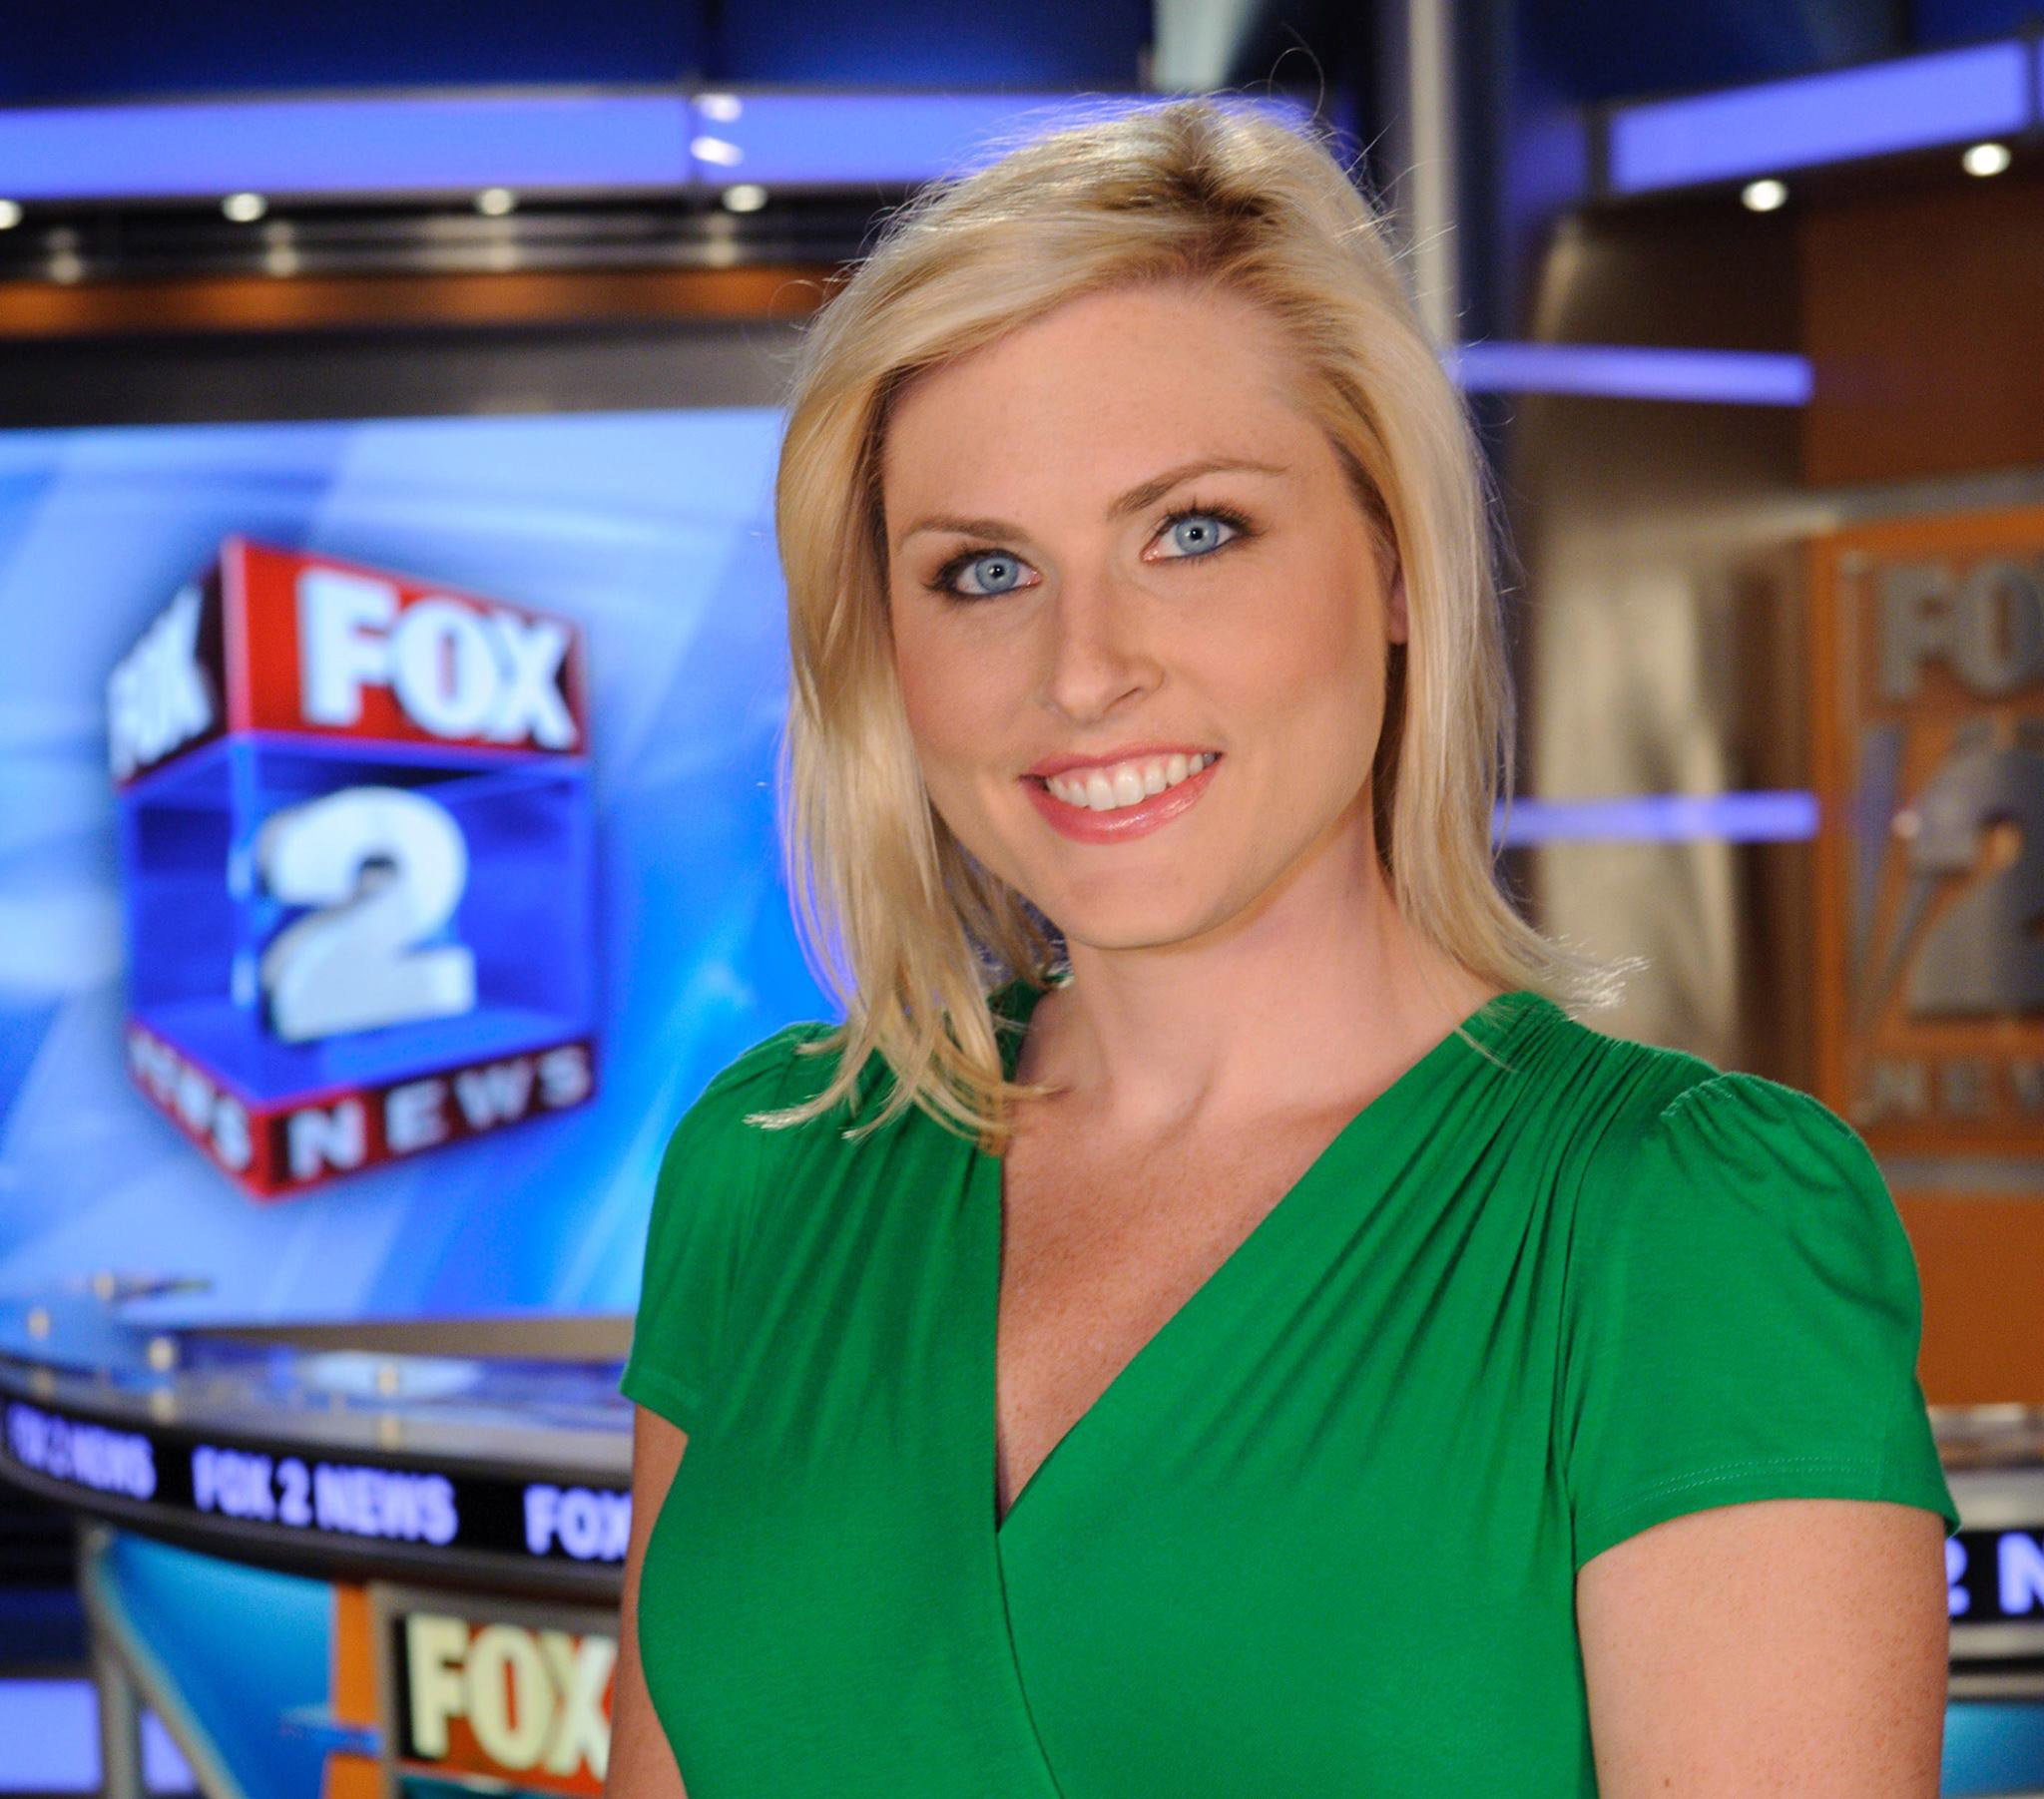 Detroit Meteorologist Dies by Suicide After Opening Up About Lasik Surgery Complications